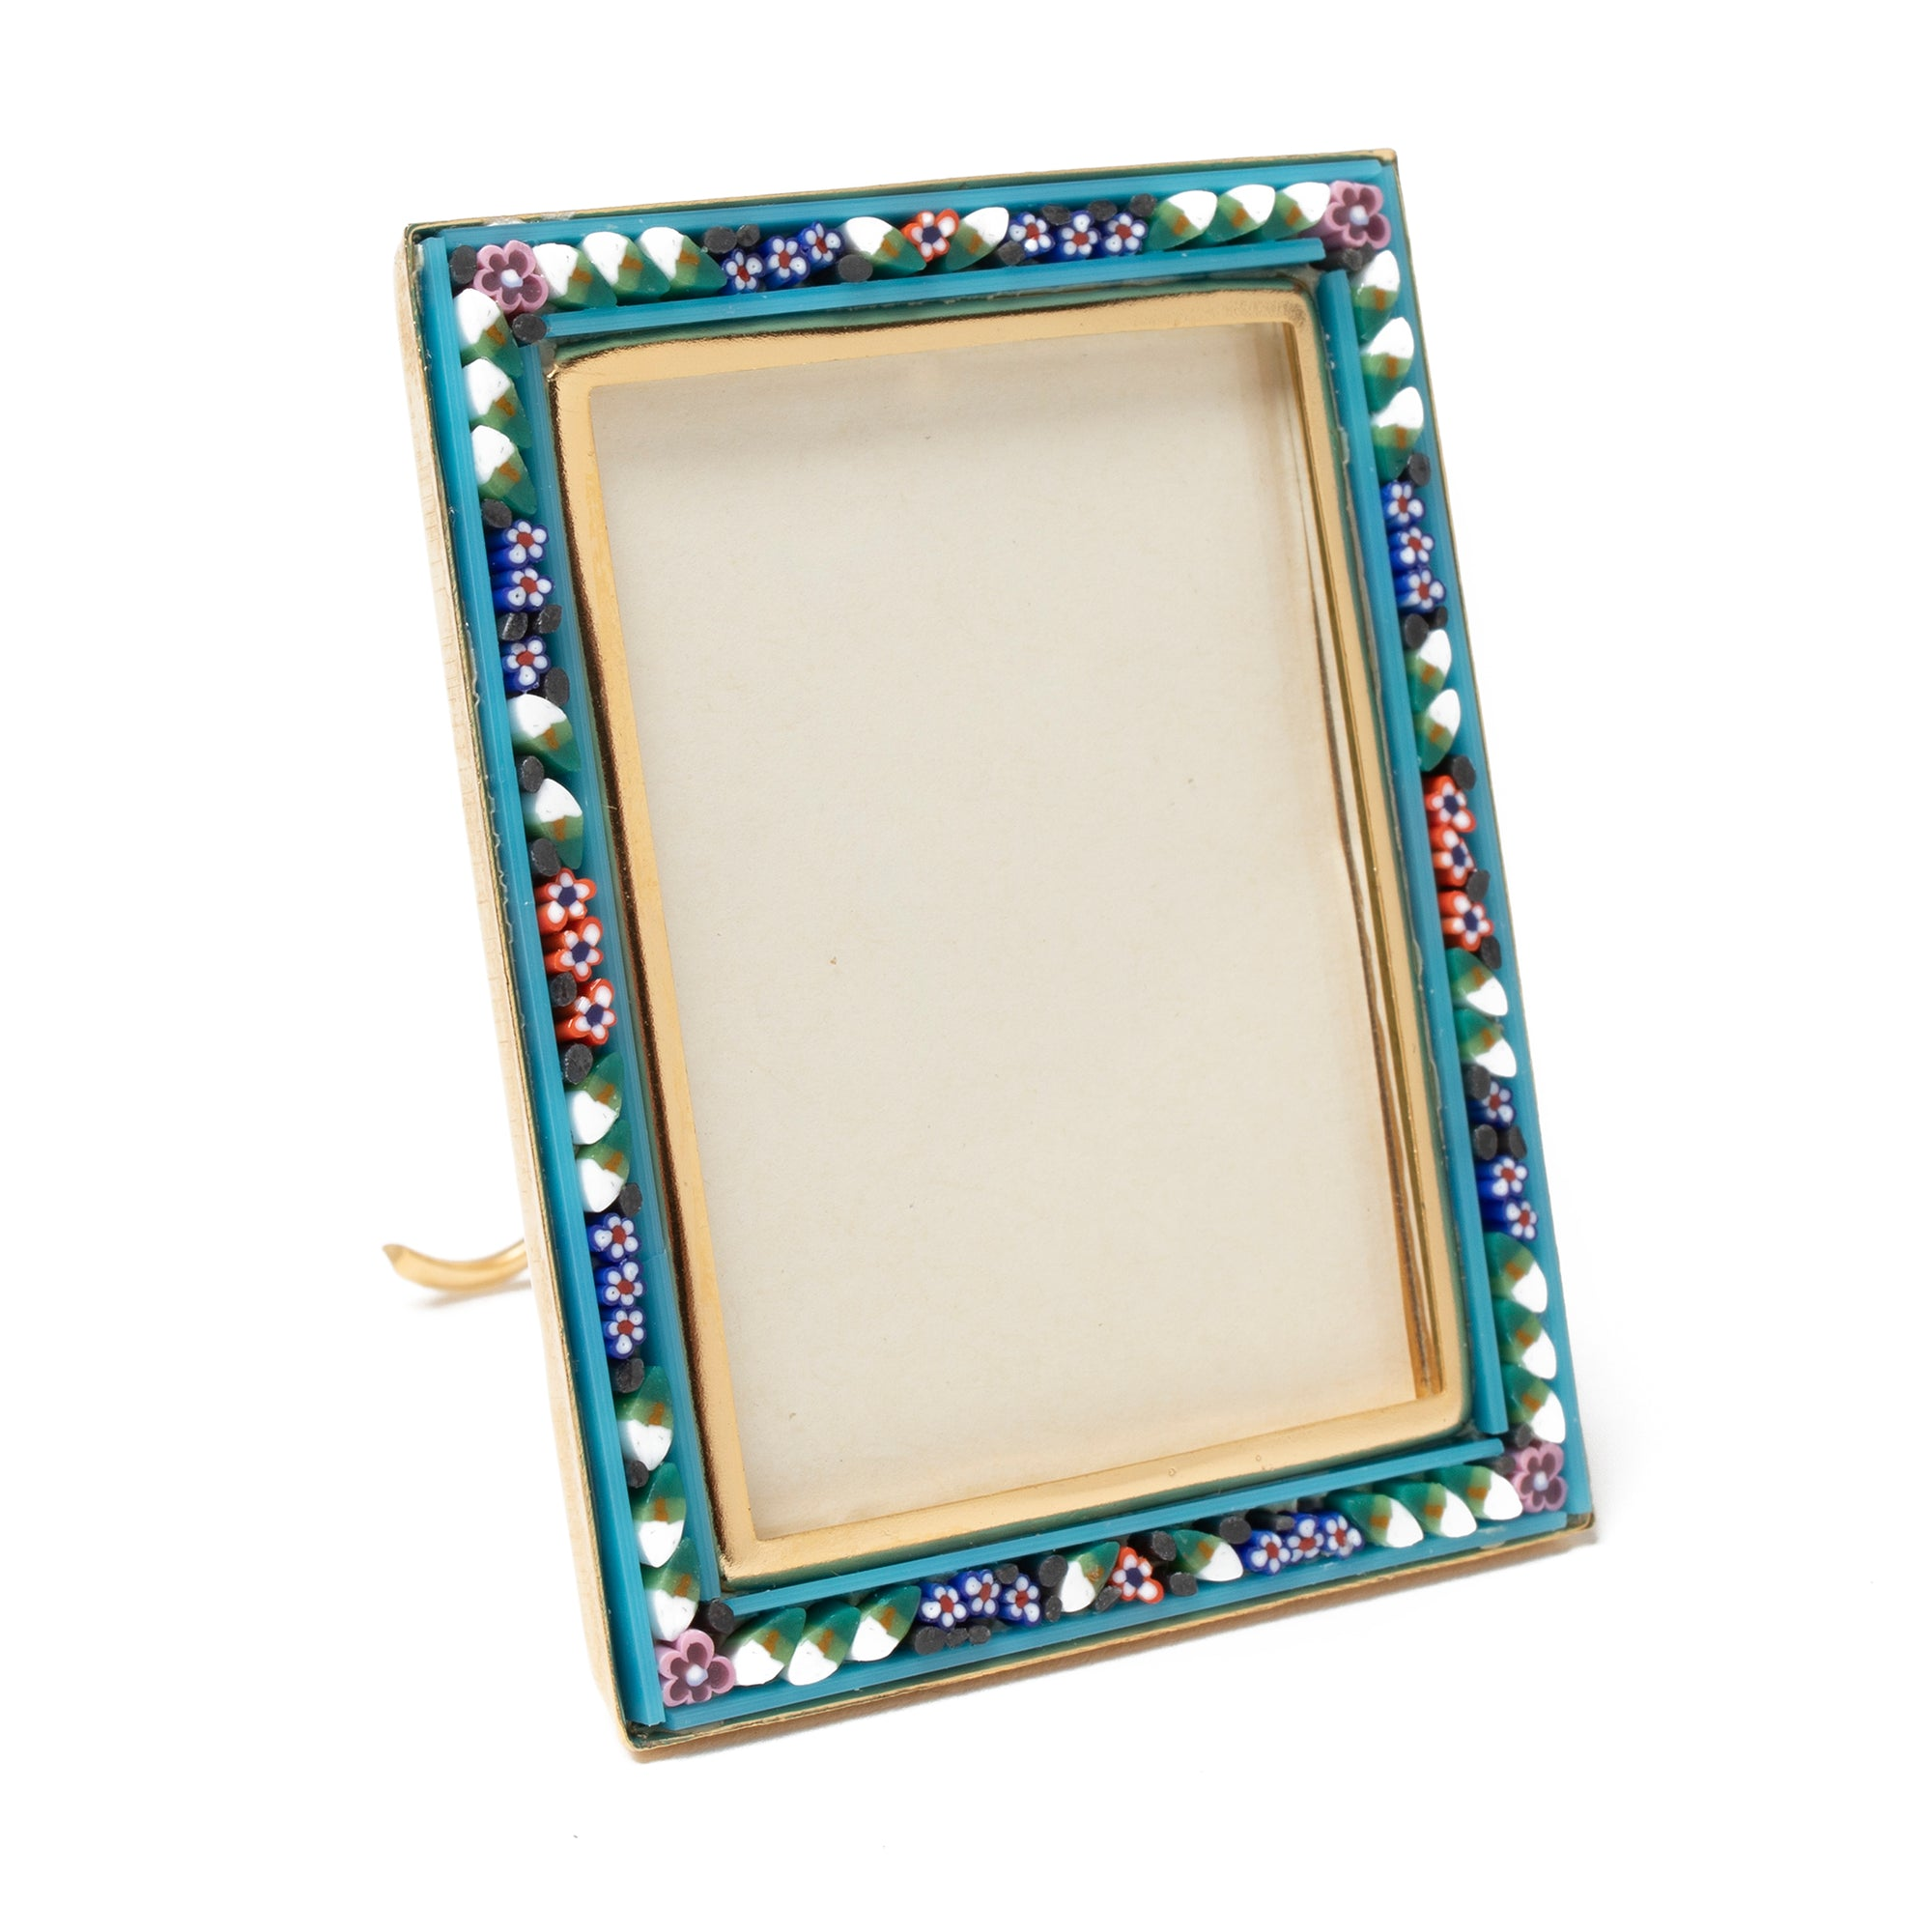 Murano Glass Mosaic Frame - Rectangular